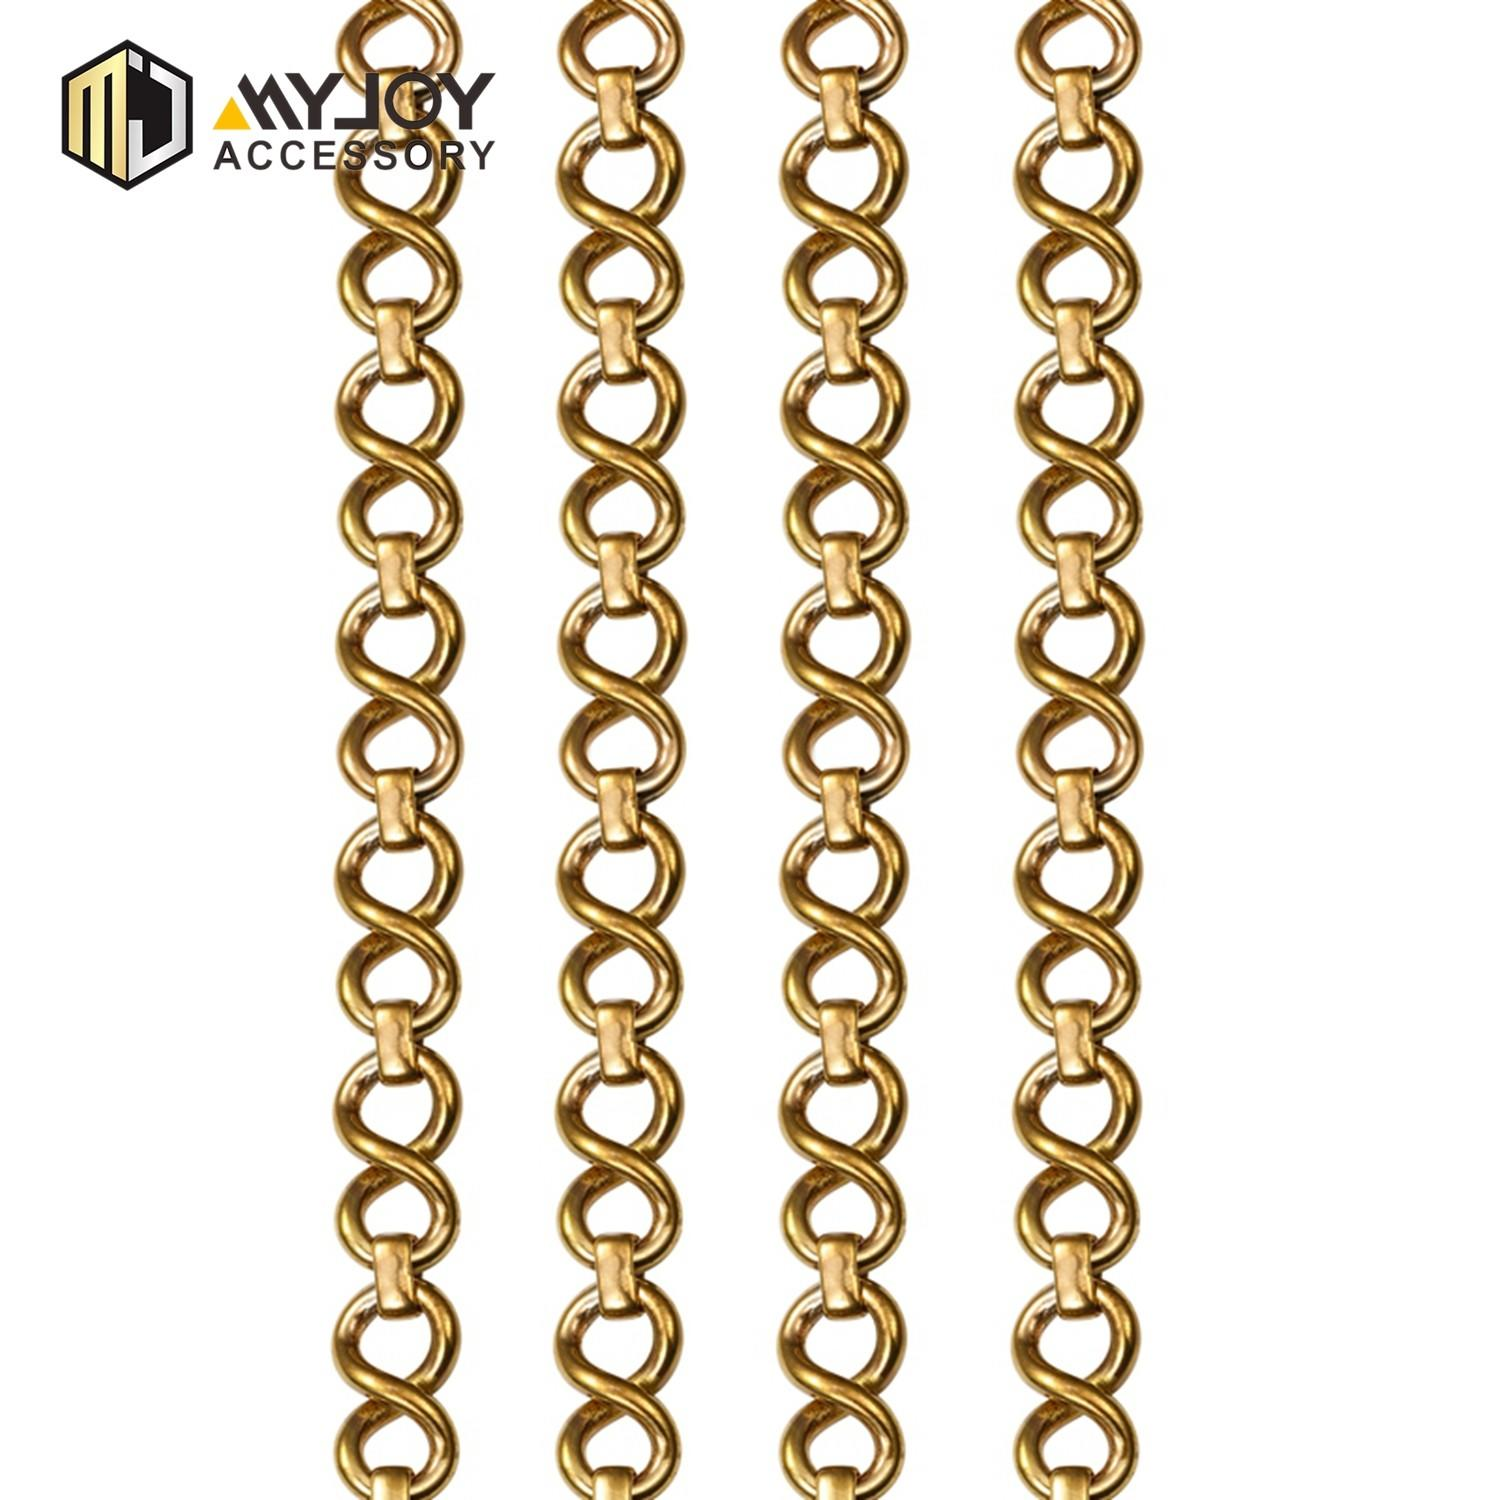 MYJOY Latest strap chain Supply for handbag-2